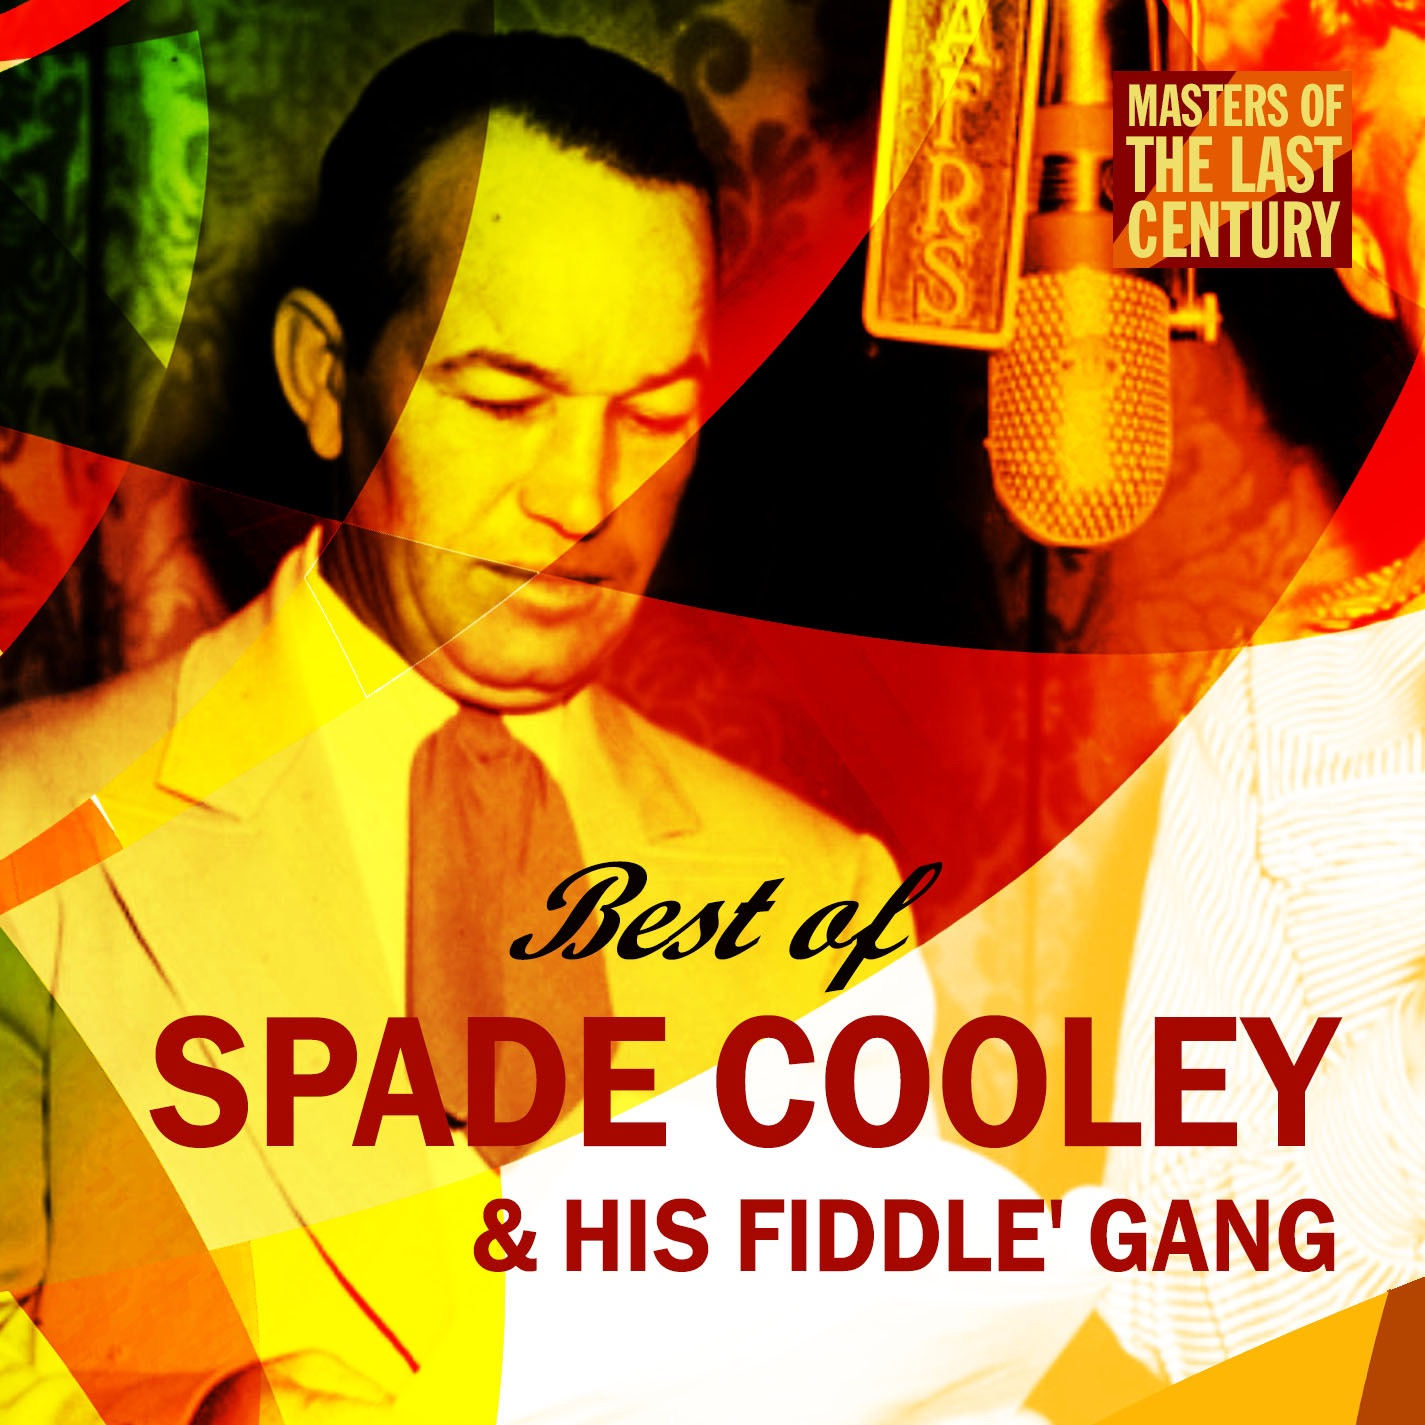 Masters of the Last Century: Best of Spade Cooley & his Fiddlin' Gang